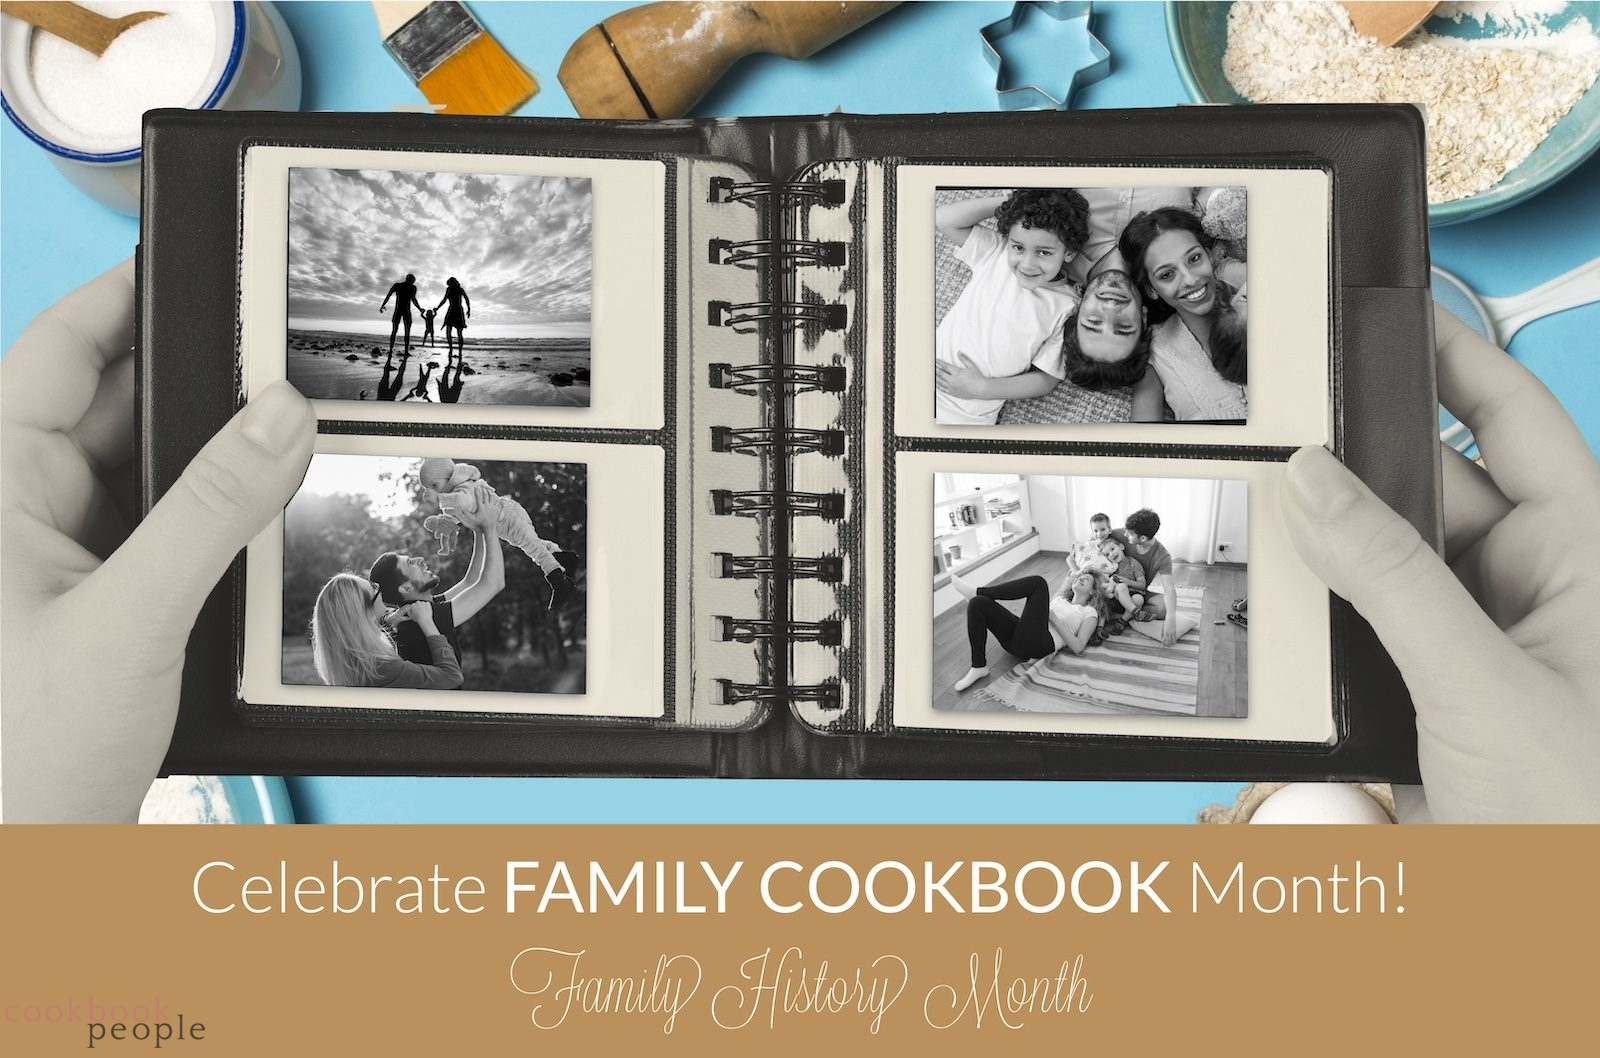 B&W family photo album over coloured table of cooking utensils with text: Celebrate Family Cookbook Month - Family History Month